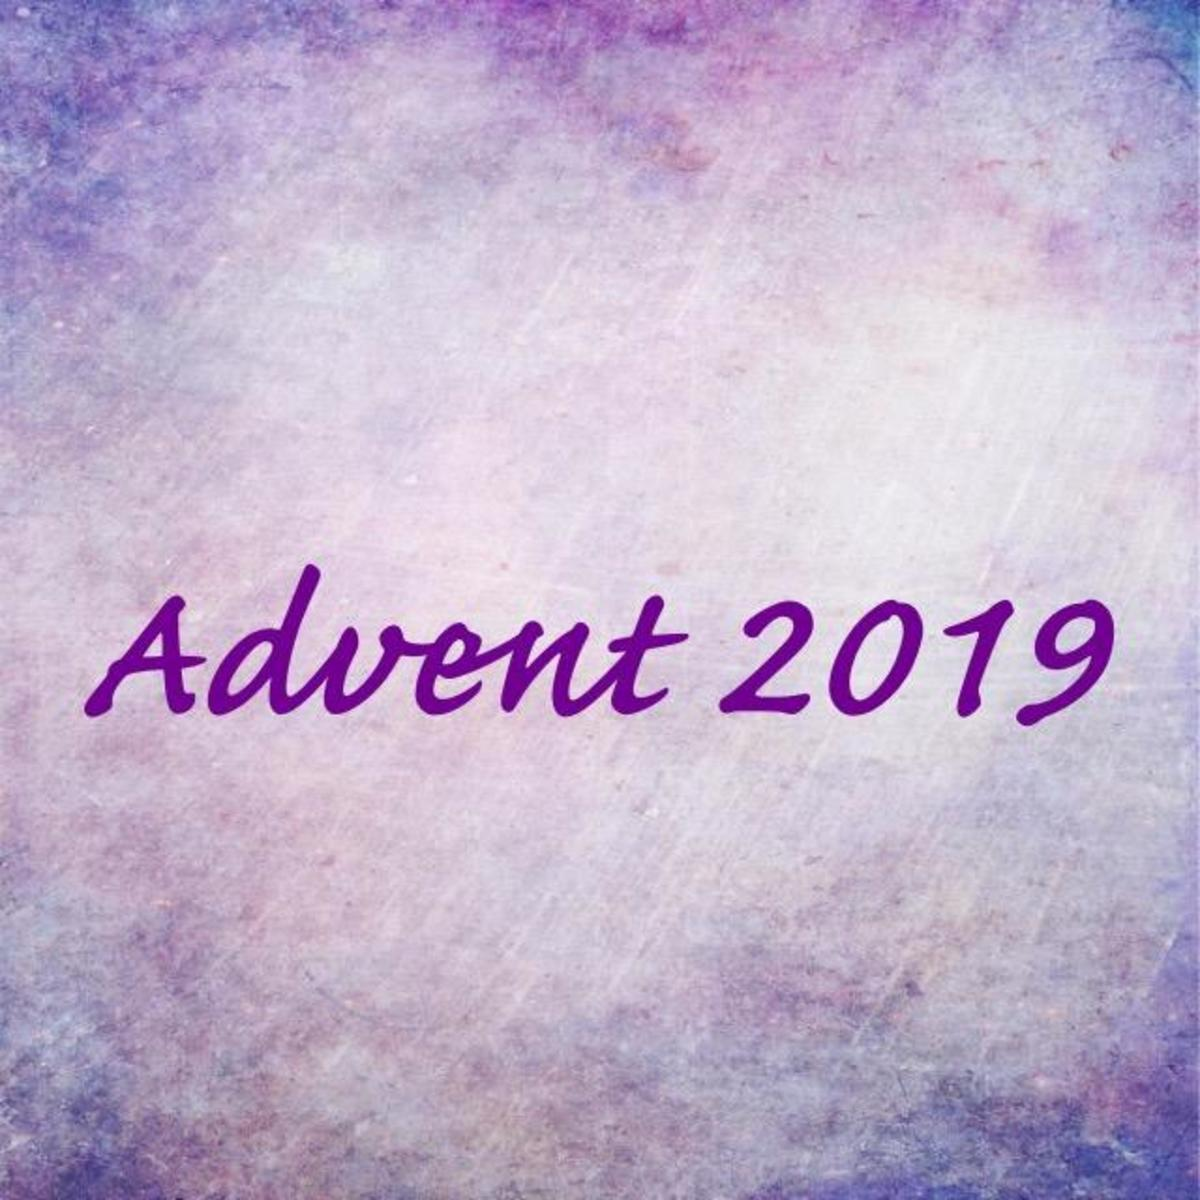 Advent 2019: Dates, Themes and Other Interesting Things